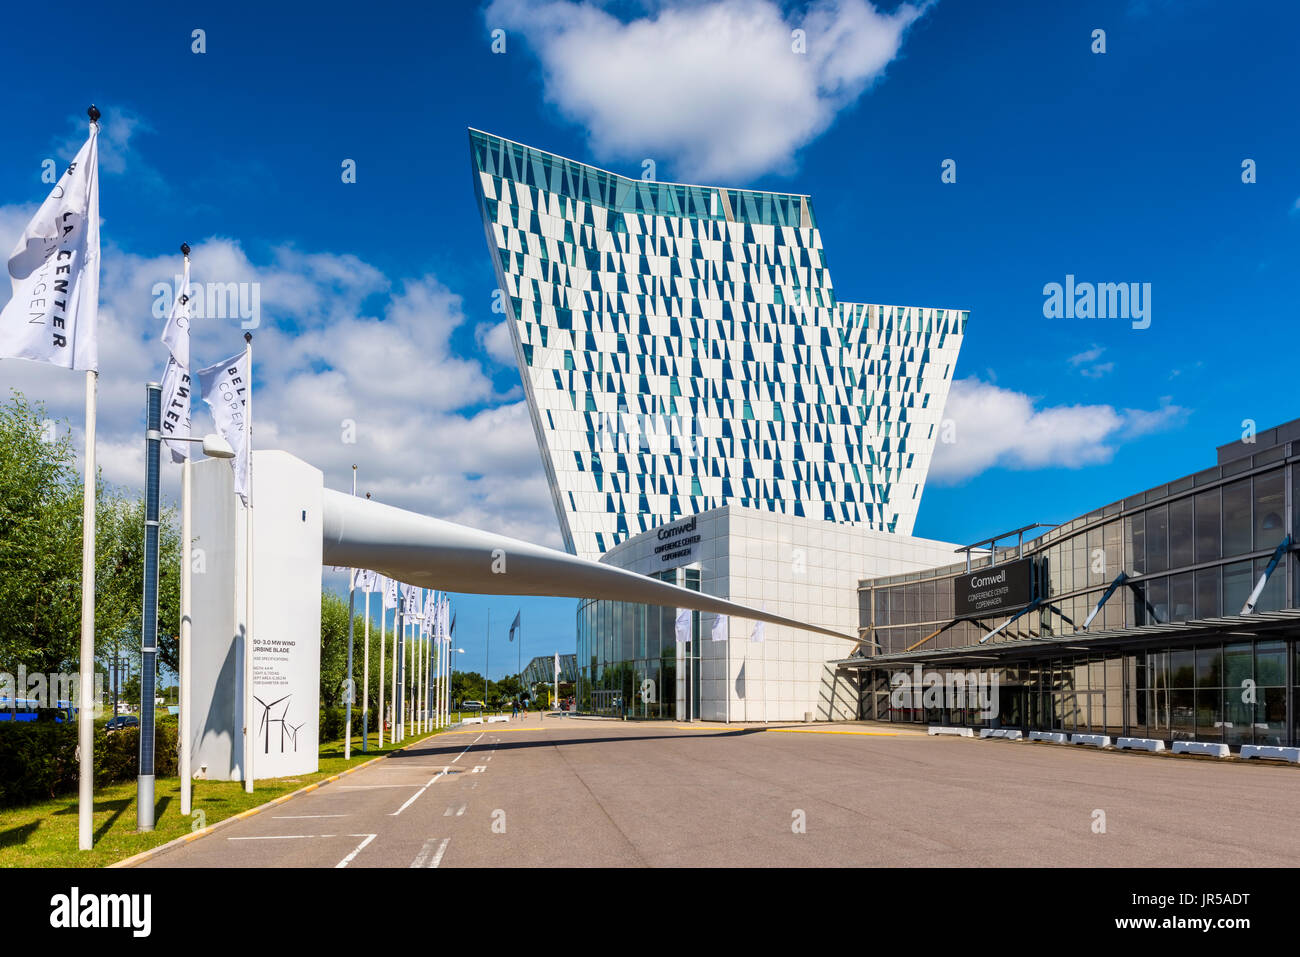 AC Bella Sky Marriott Hotel and Comwell Convention Center in the Orestad district of Copenhagen Denmark - Stock Image